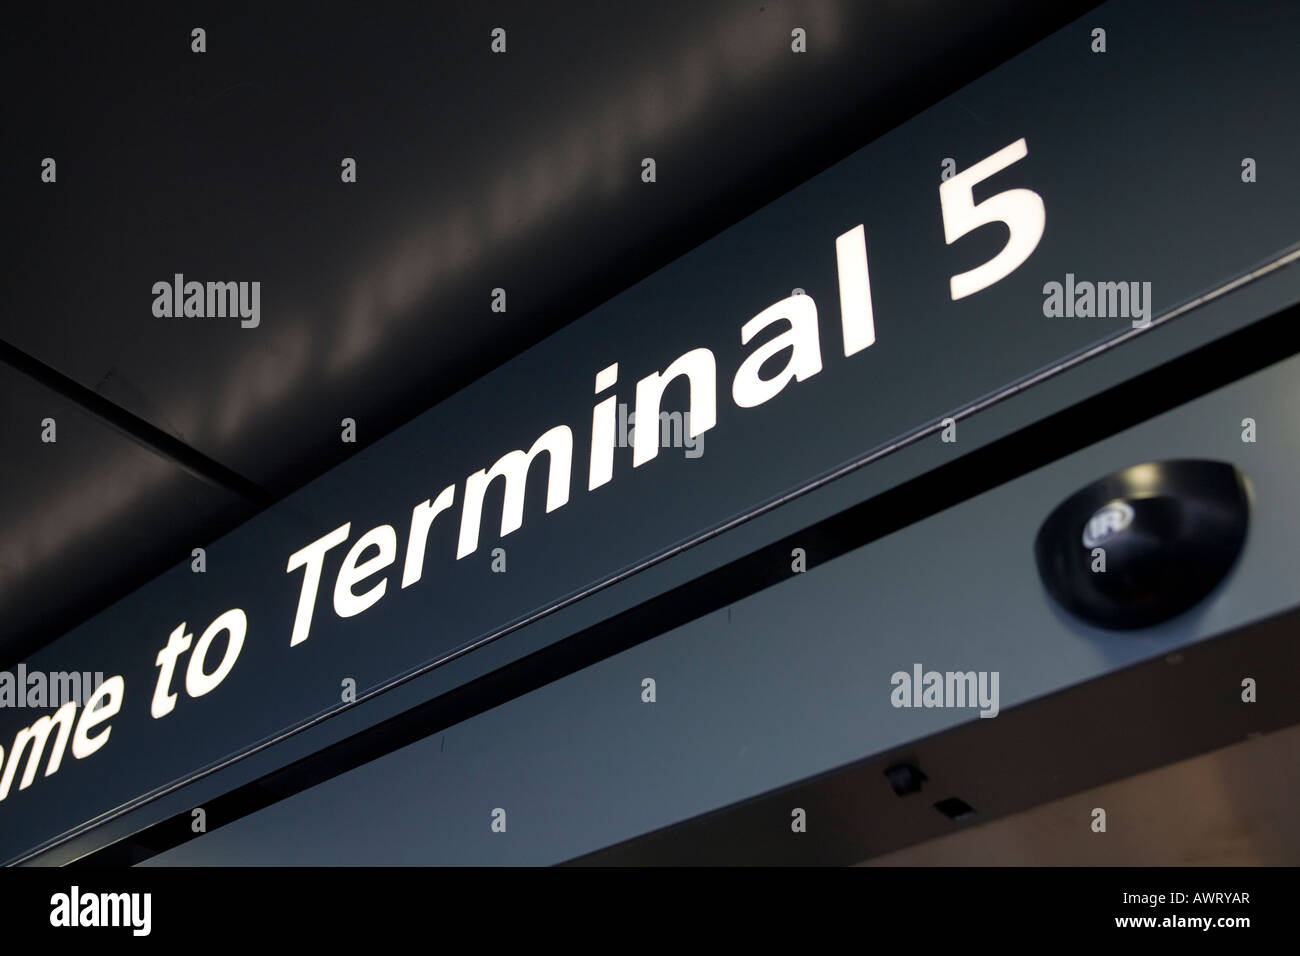 Welcome sign to London Heathrow Airport Terminal 5 - Stock Image